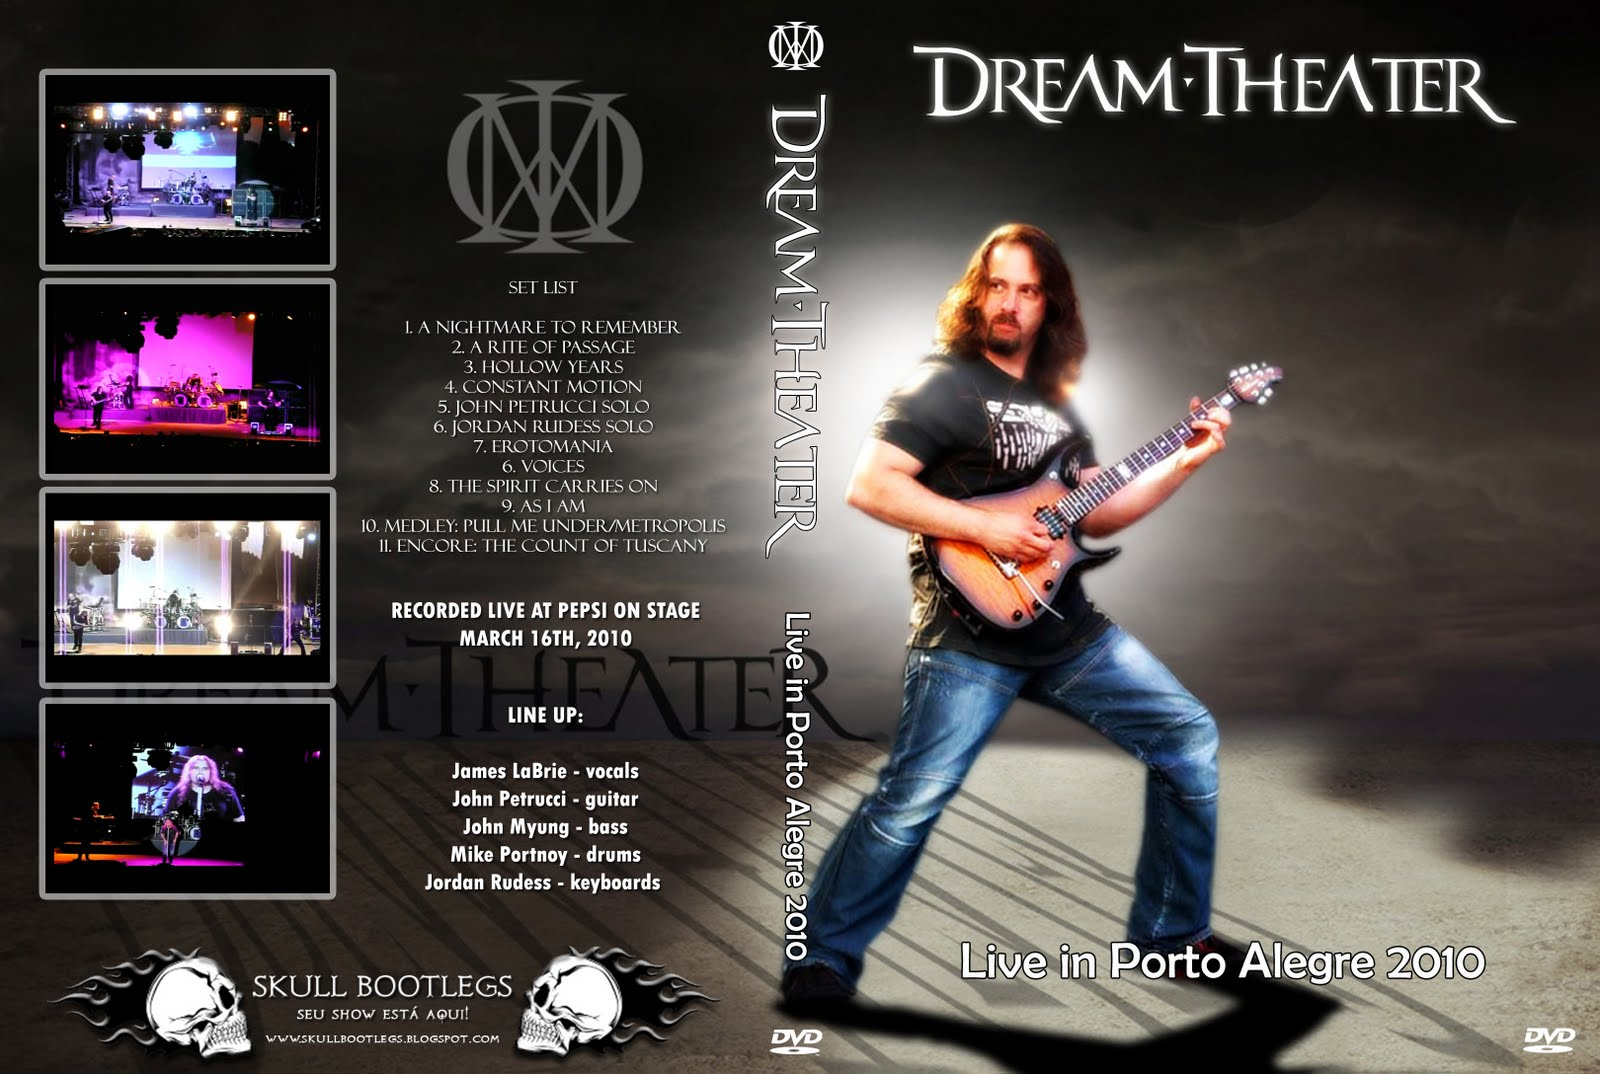 noronha s trader dream theater live in poa 2010. Black Bedroom Furniture Sets. Home Design Ideas